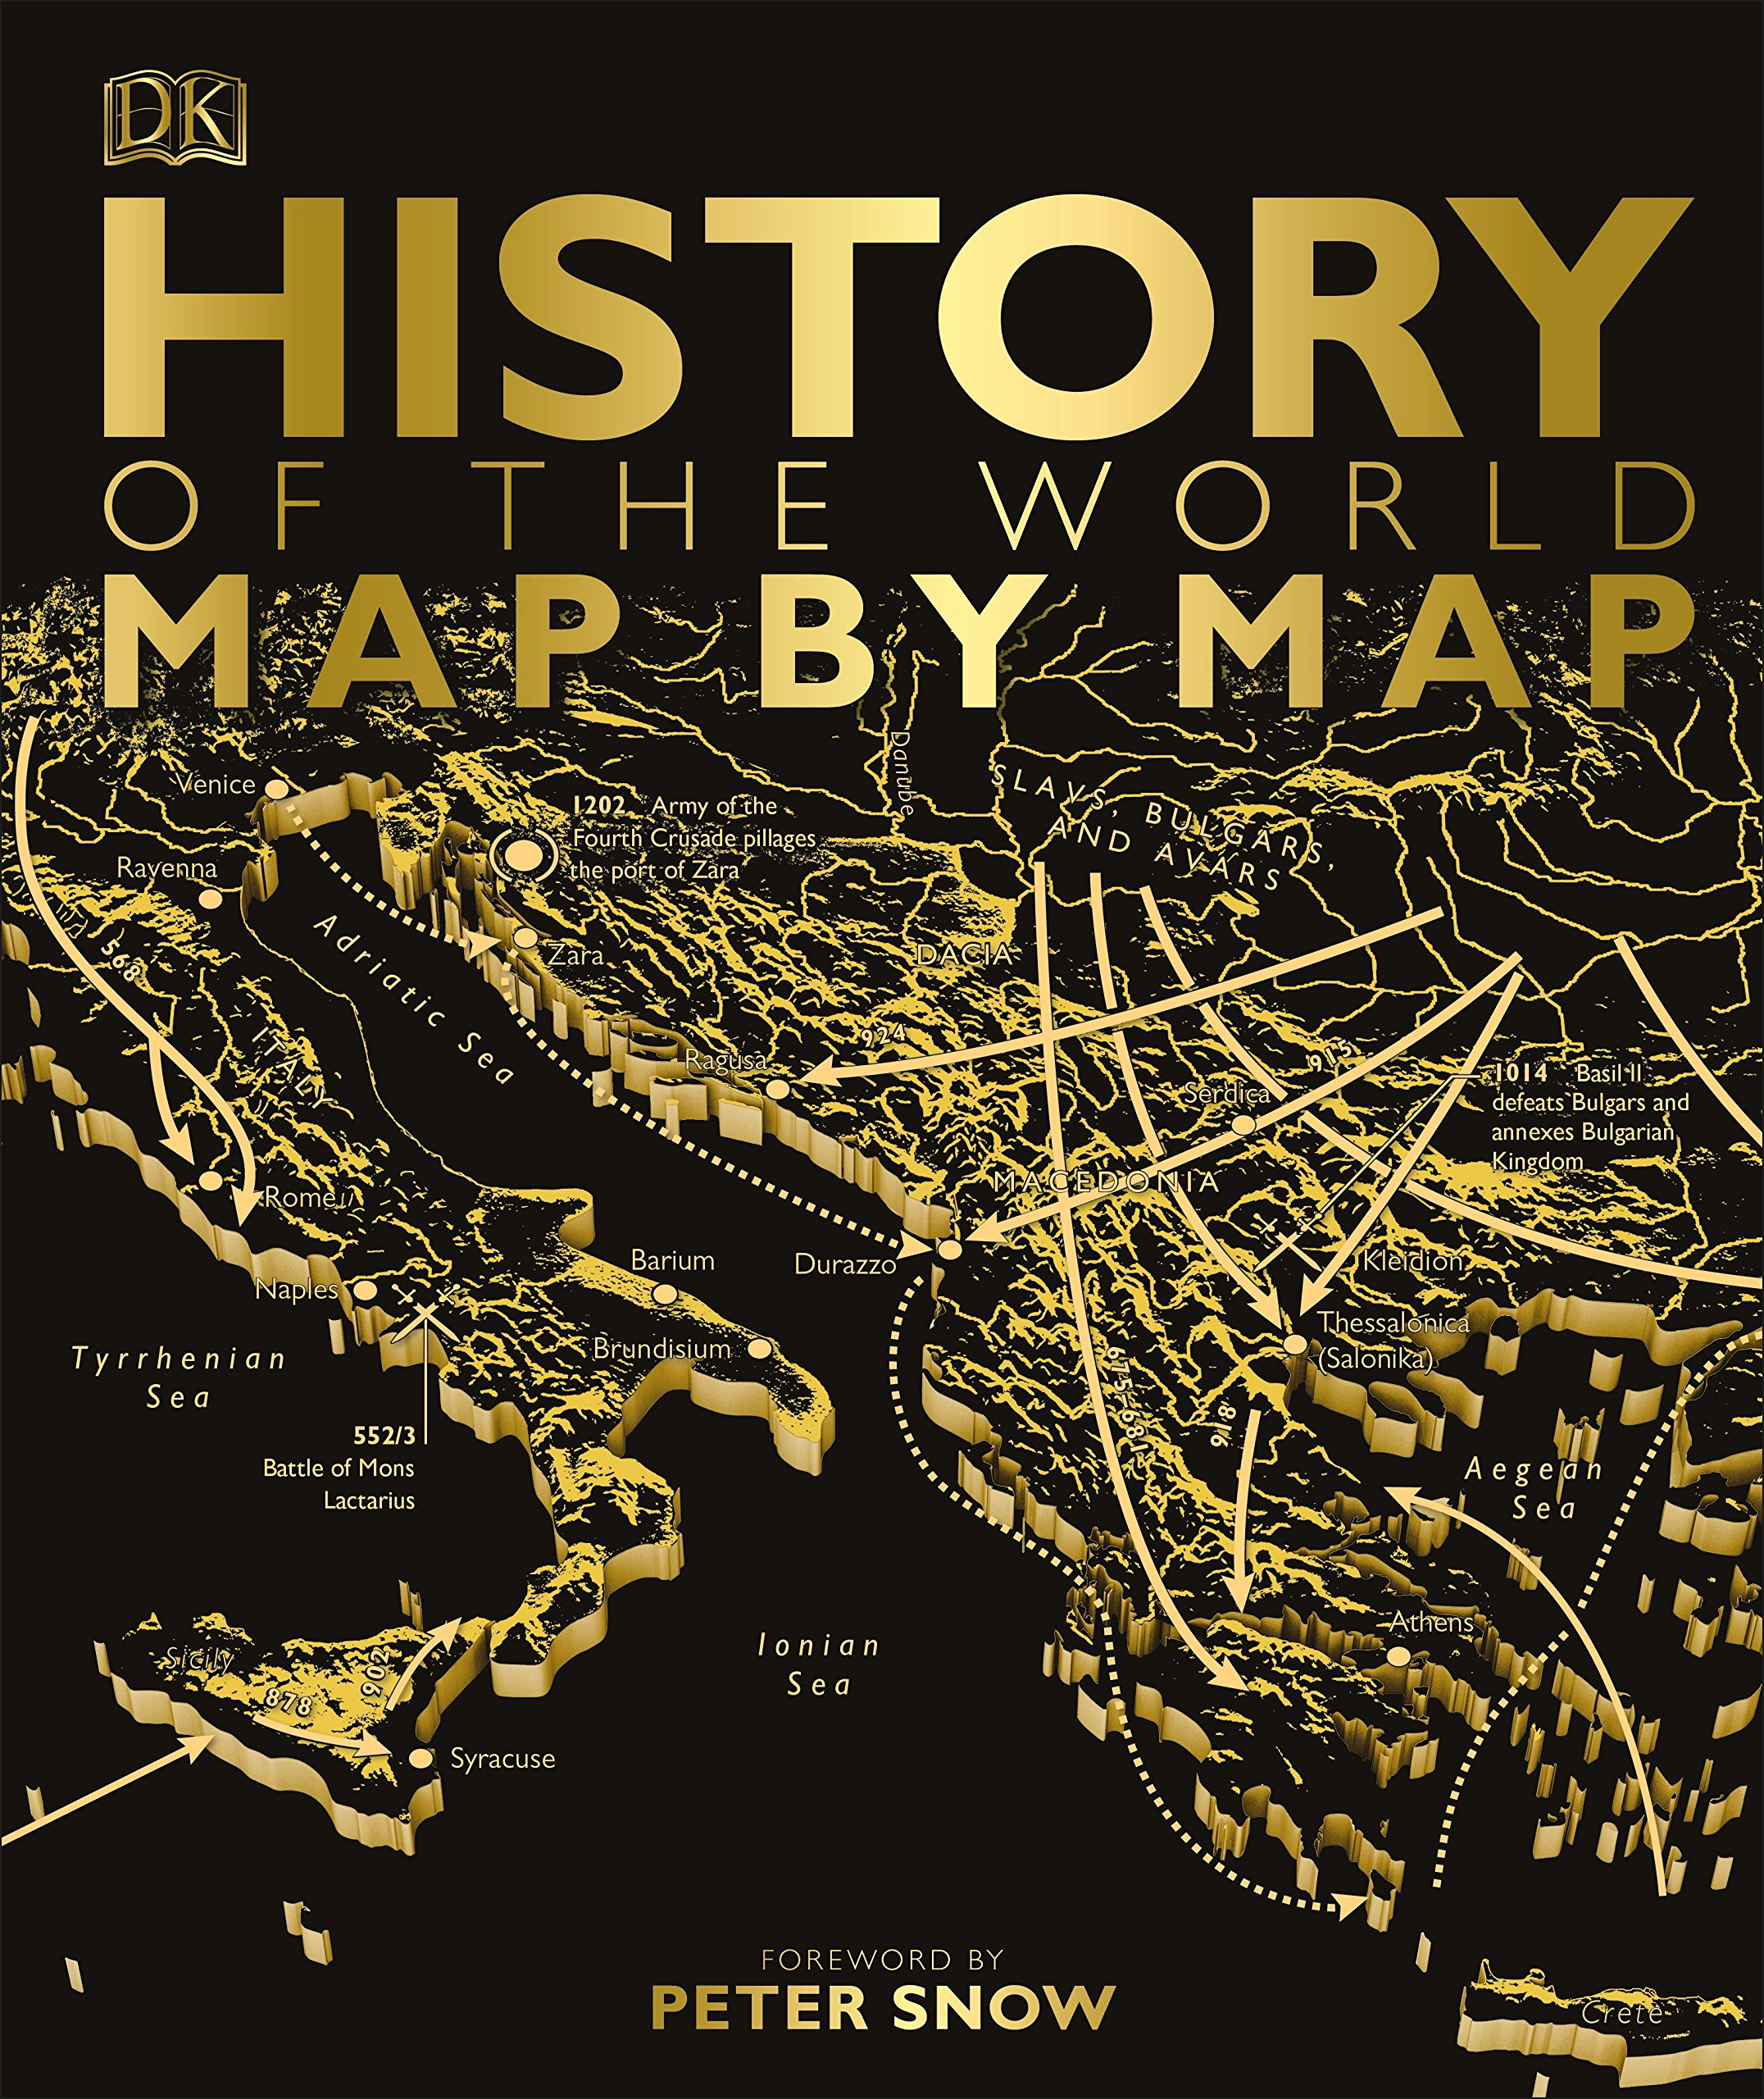 History Of The World Map By Map History of The World Map By Map: 9780241226148: Amazon.com: Books